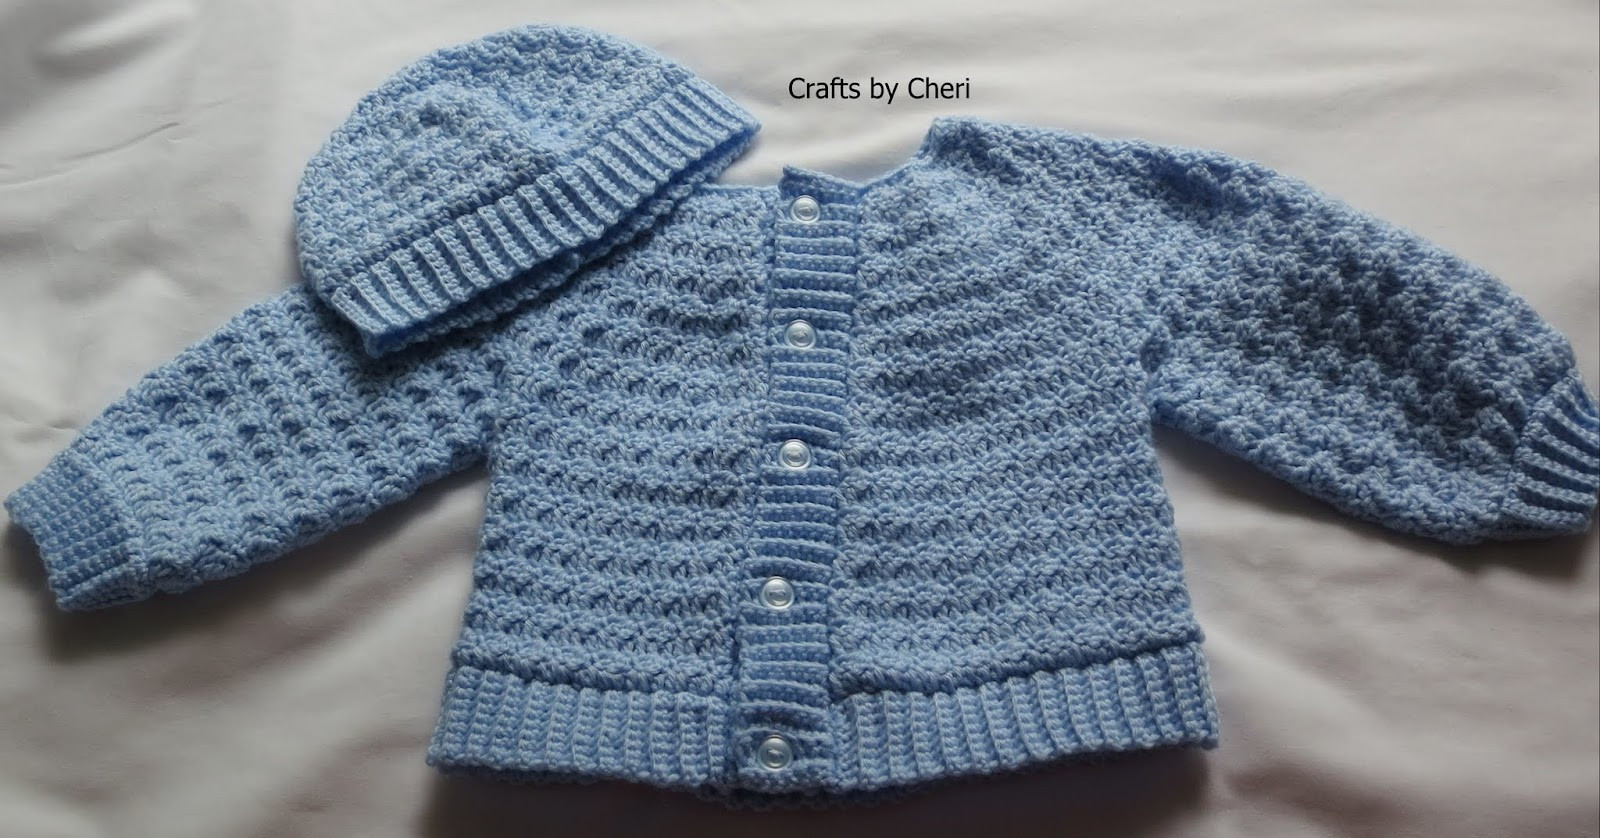 Elegant Crochet Baby Boy Clothes Free Crochet Baby Sweater Patterns Of Wonderful 40 Images Free Crochet Baby Sweater Patterns